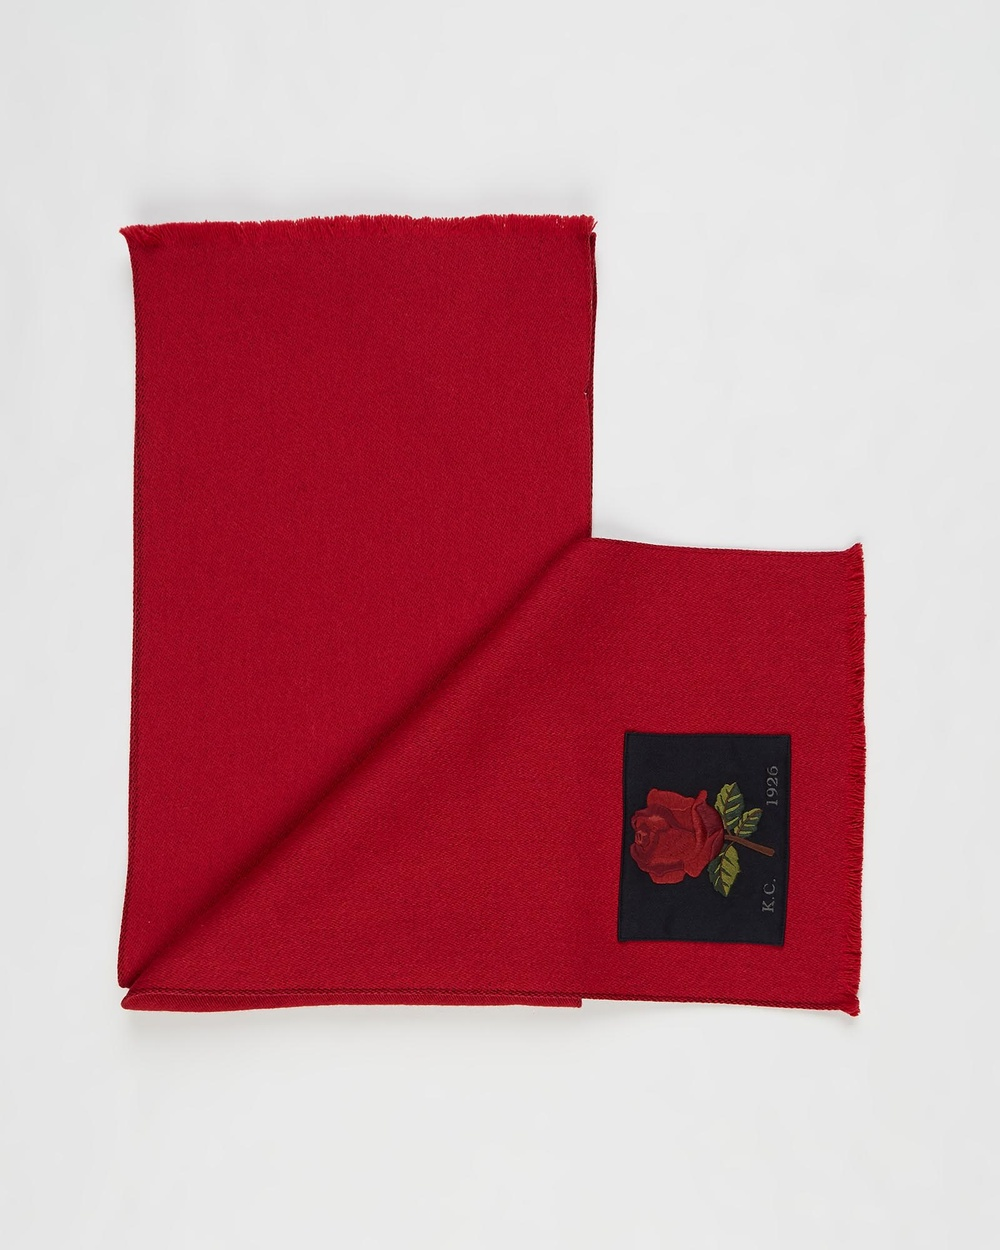 Kent and Curwen Red Rose Scarf Scarves & Gloves Red